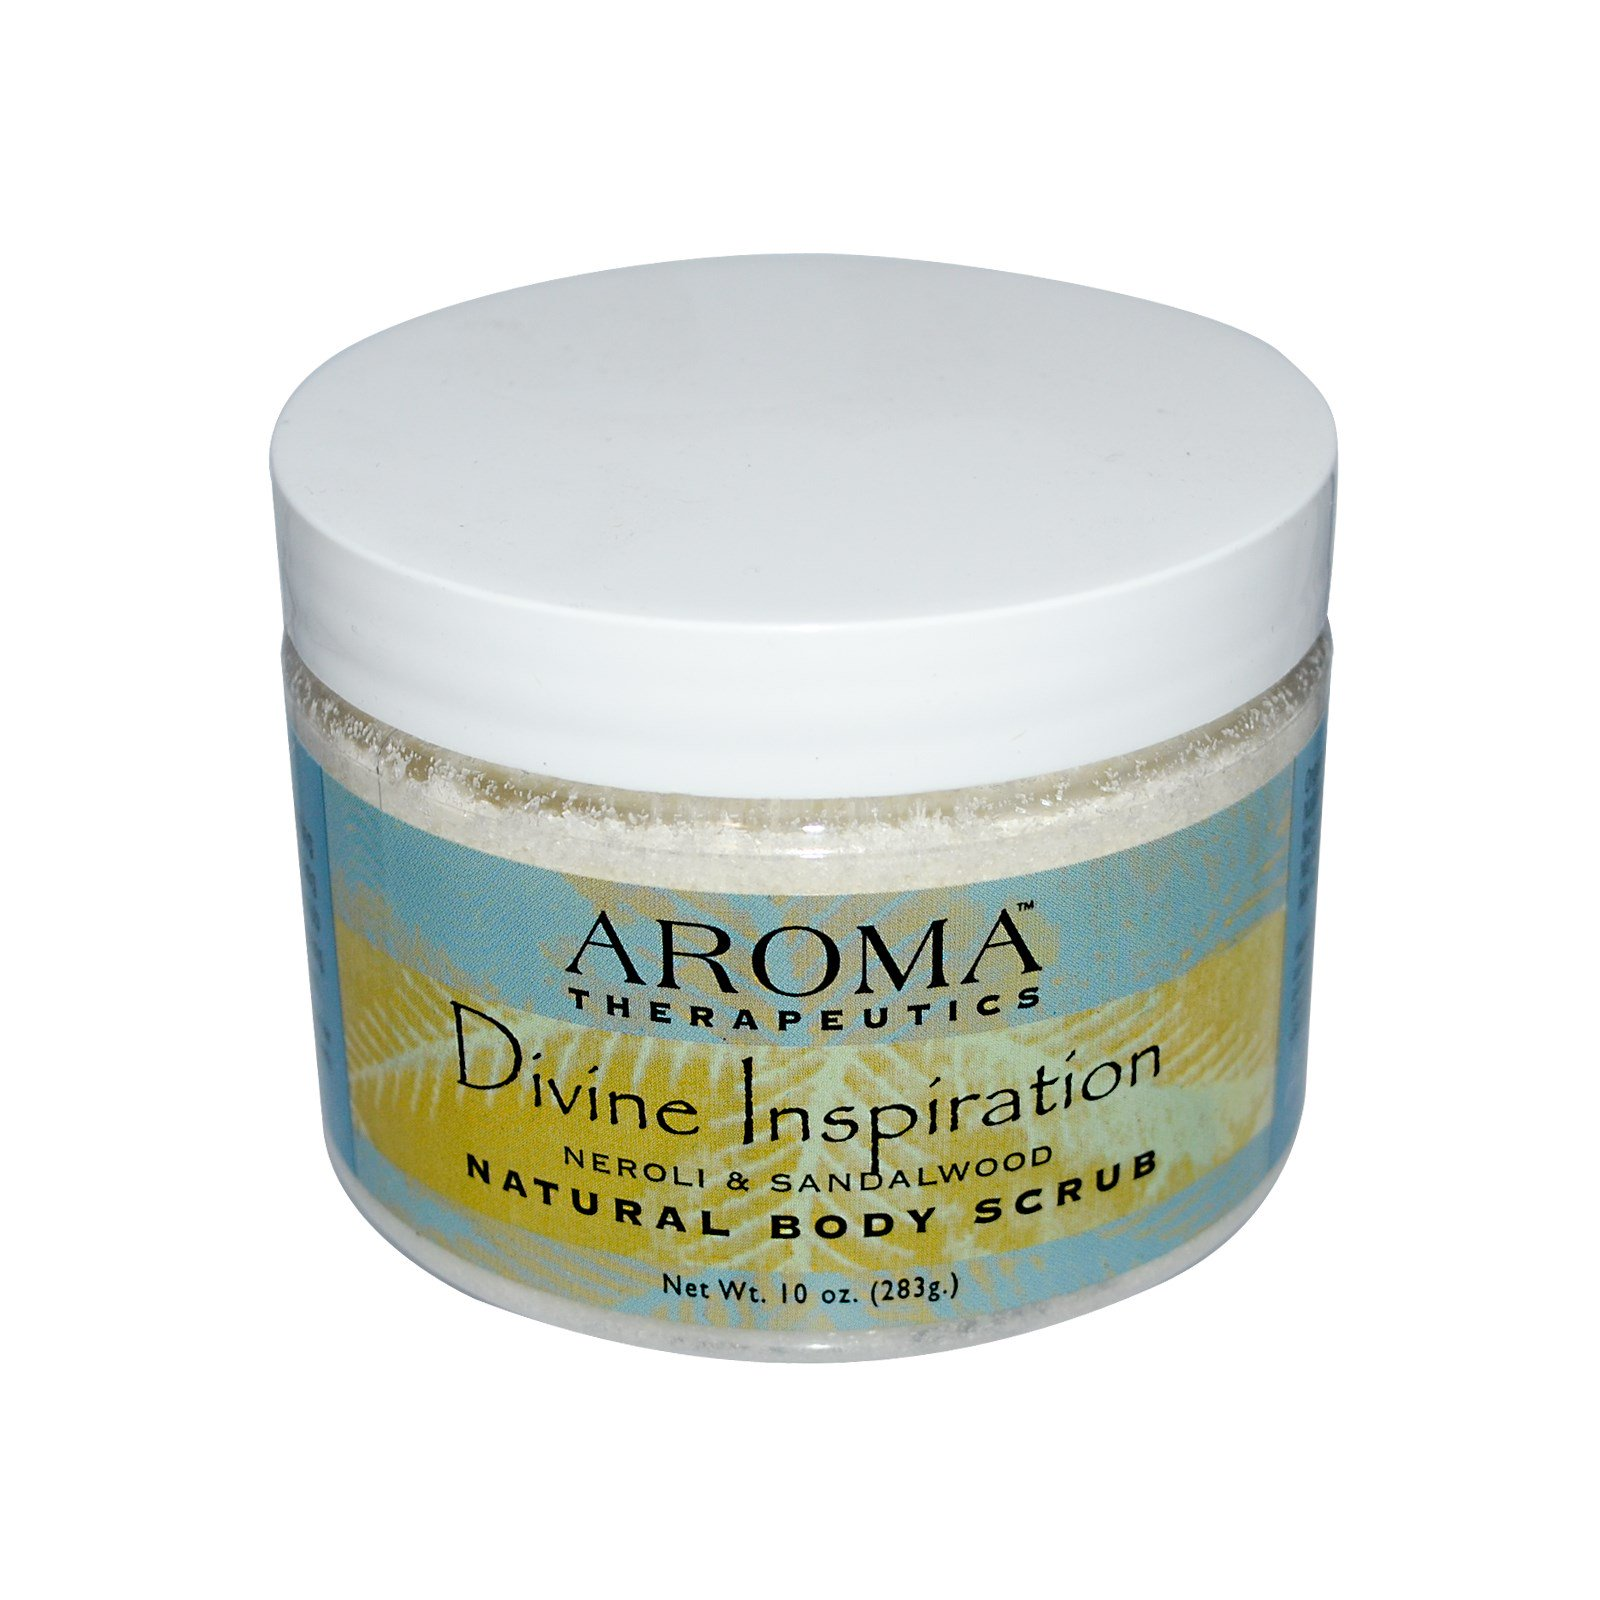 Abra Therapeutics Natural Body Scrub Divine Inspiration Neroli Cream Sandalwood 10 Oz